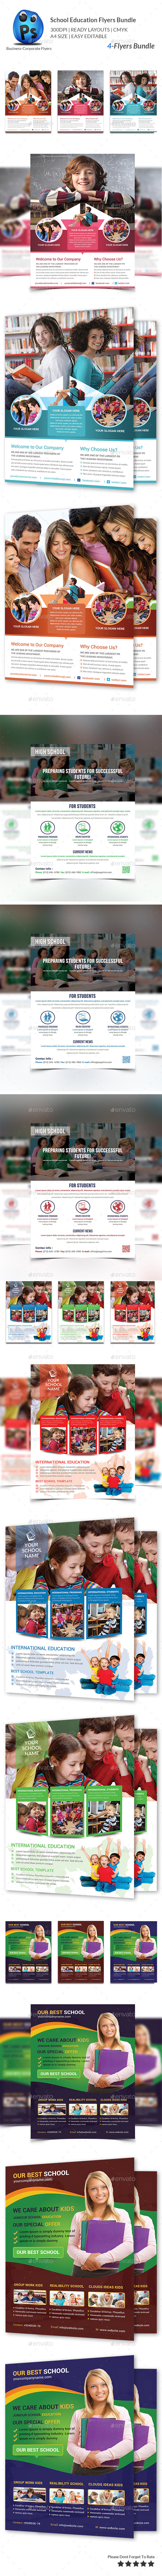 GraphicRiver School Education 4 Flyers Bundle 10285441